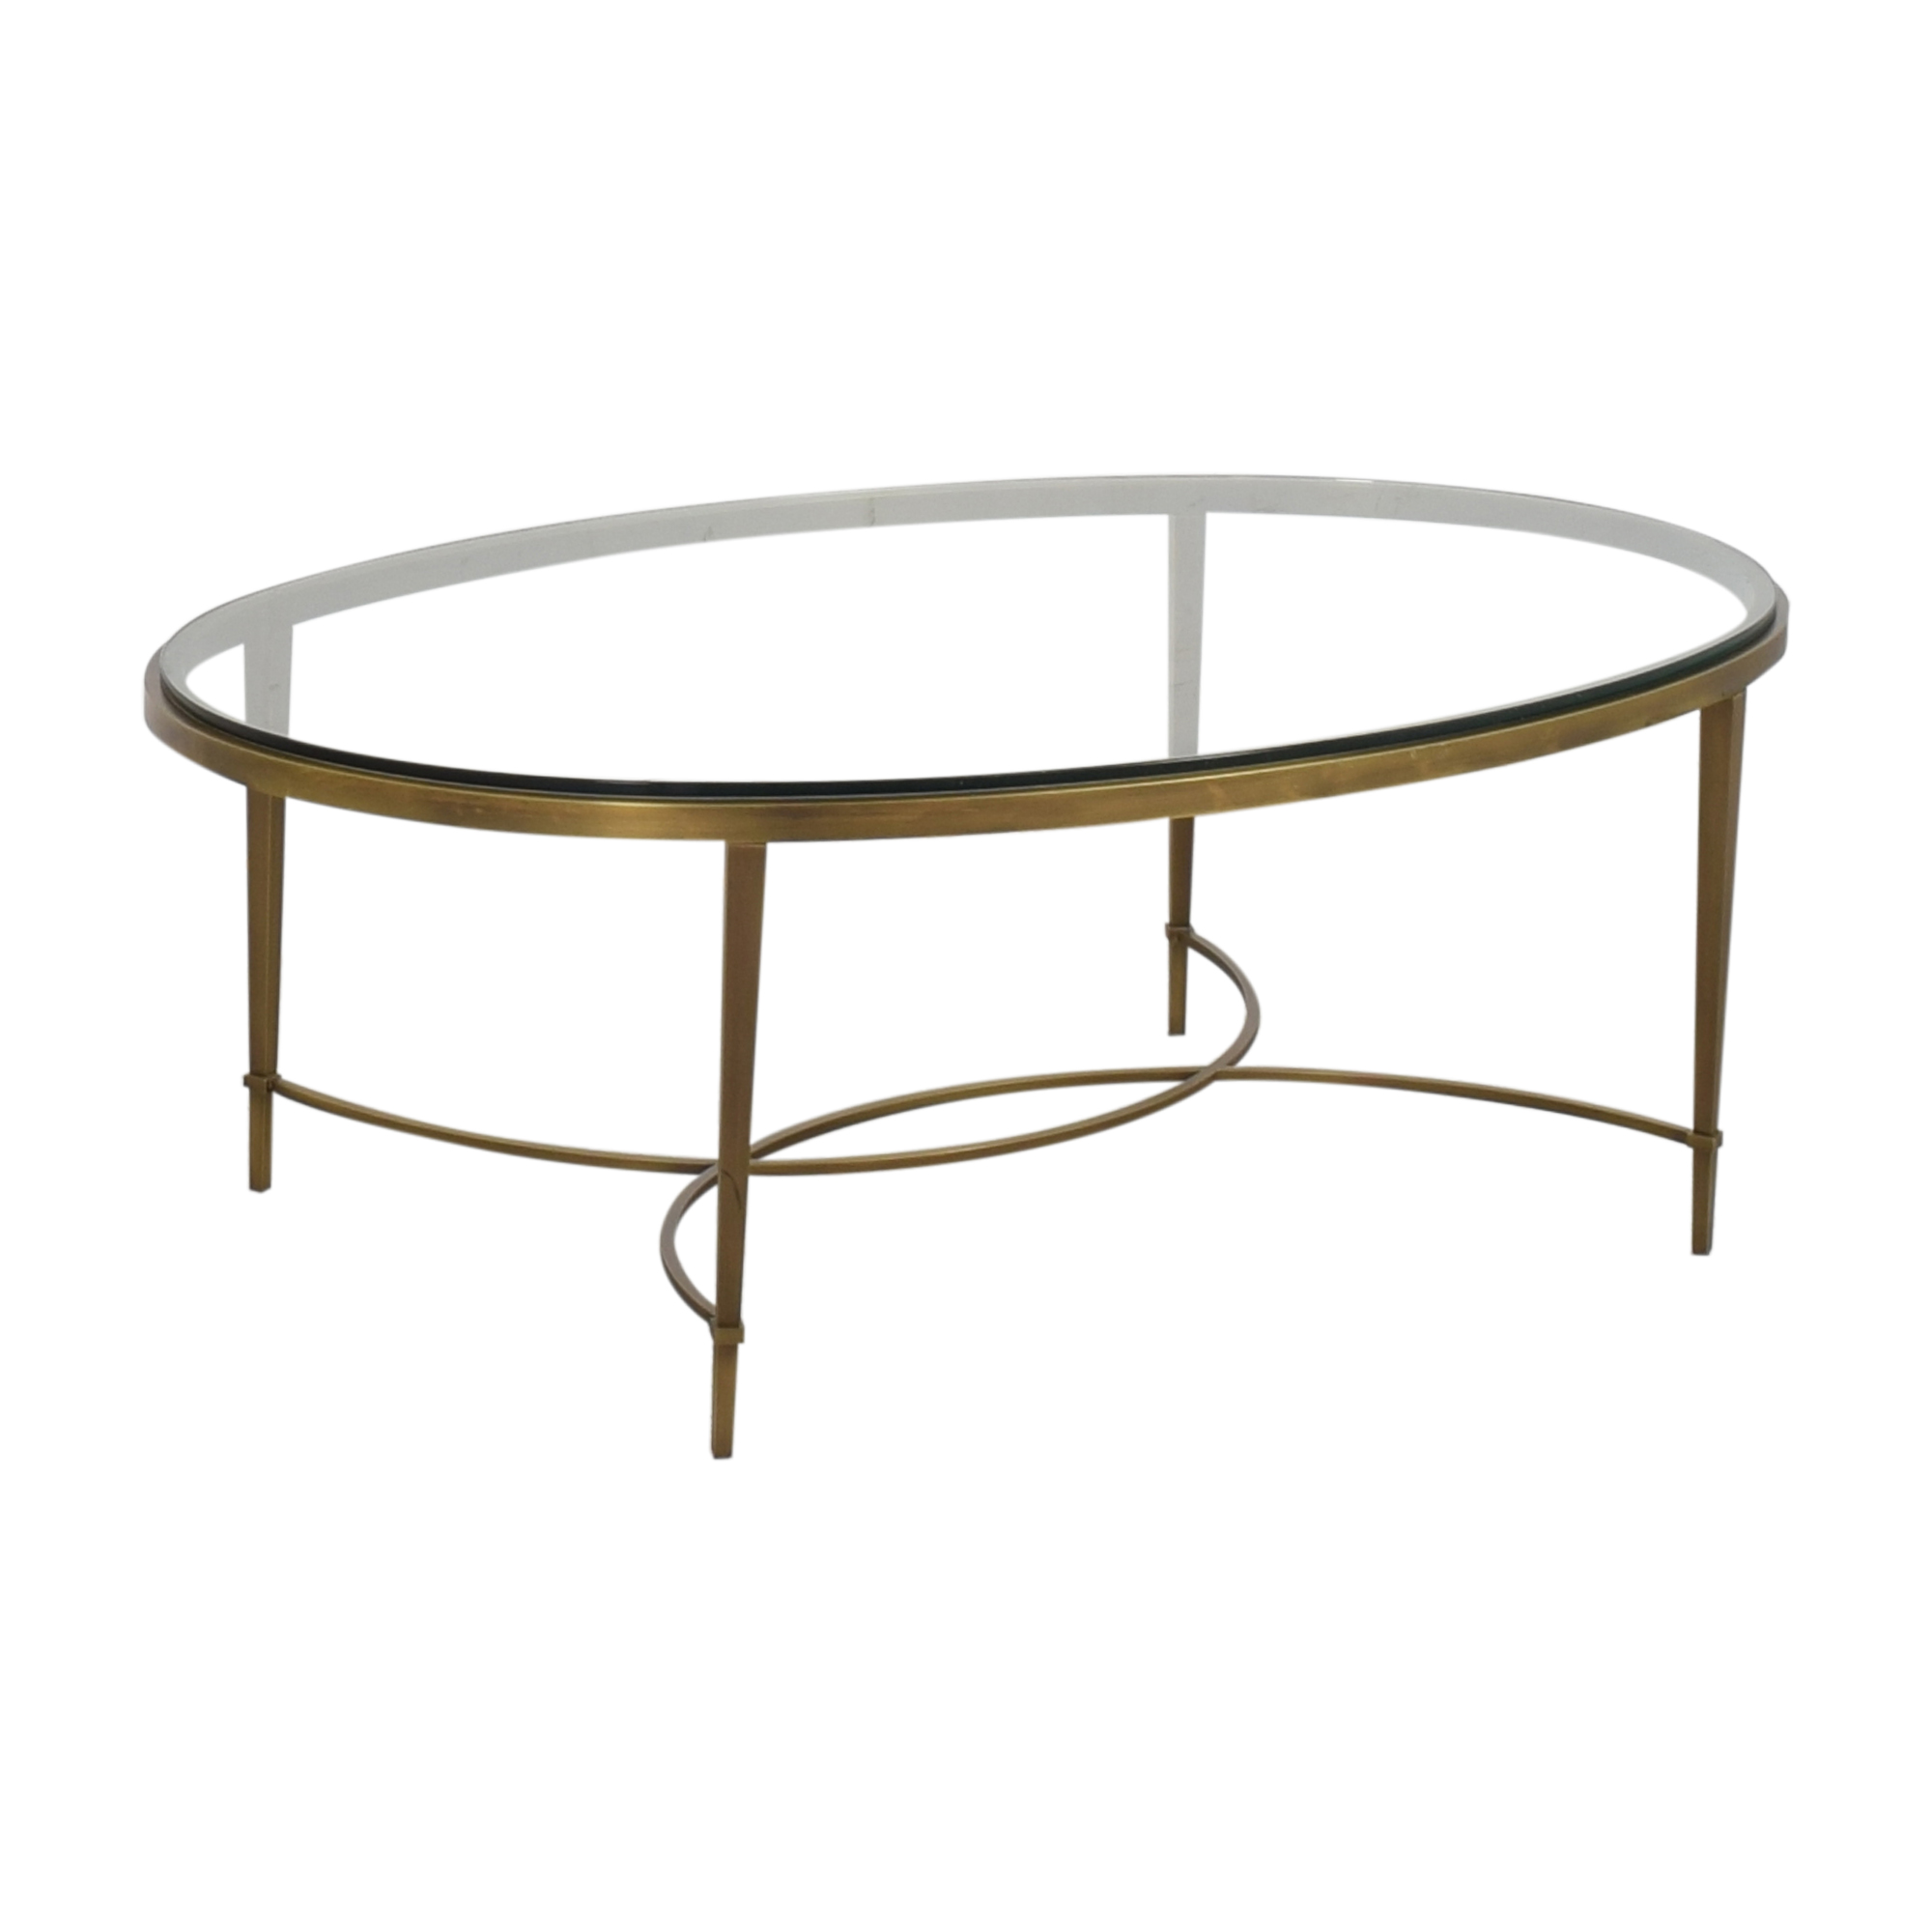 Baker Furniture Baker Furniture Oval Coffee Table used